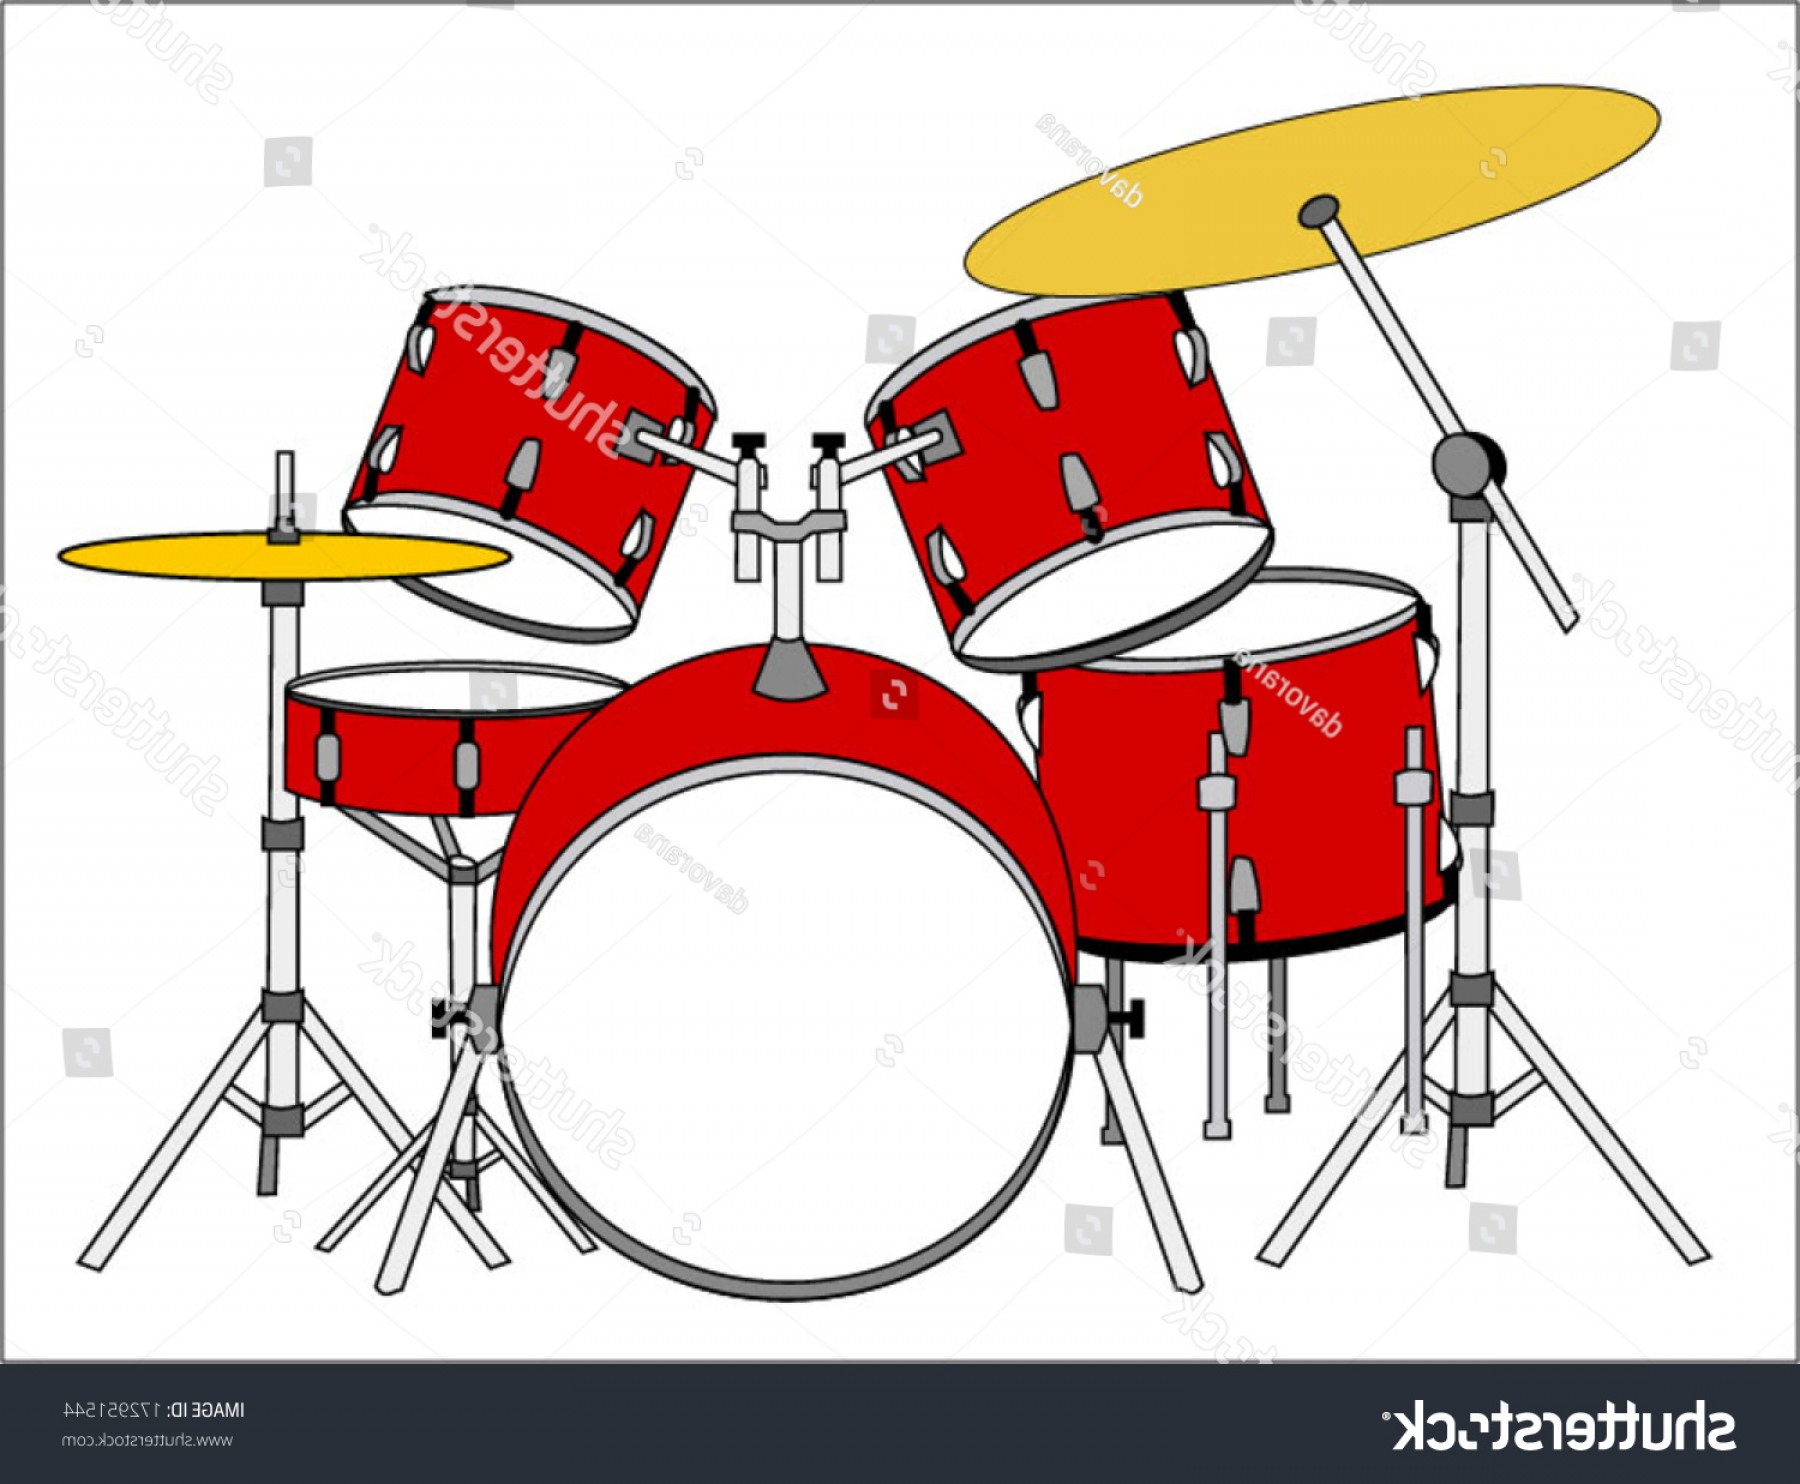 Drum Vector Art: Drums Vector Art Image Illustration Isolated